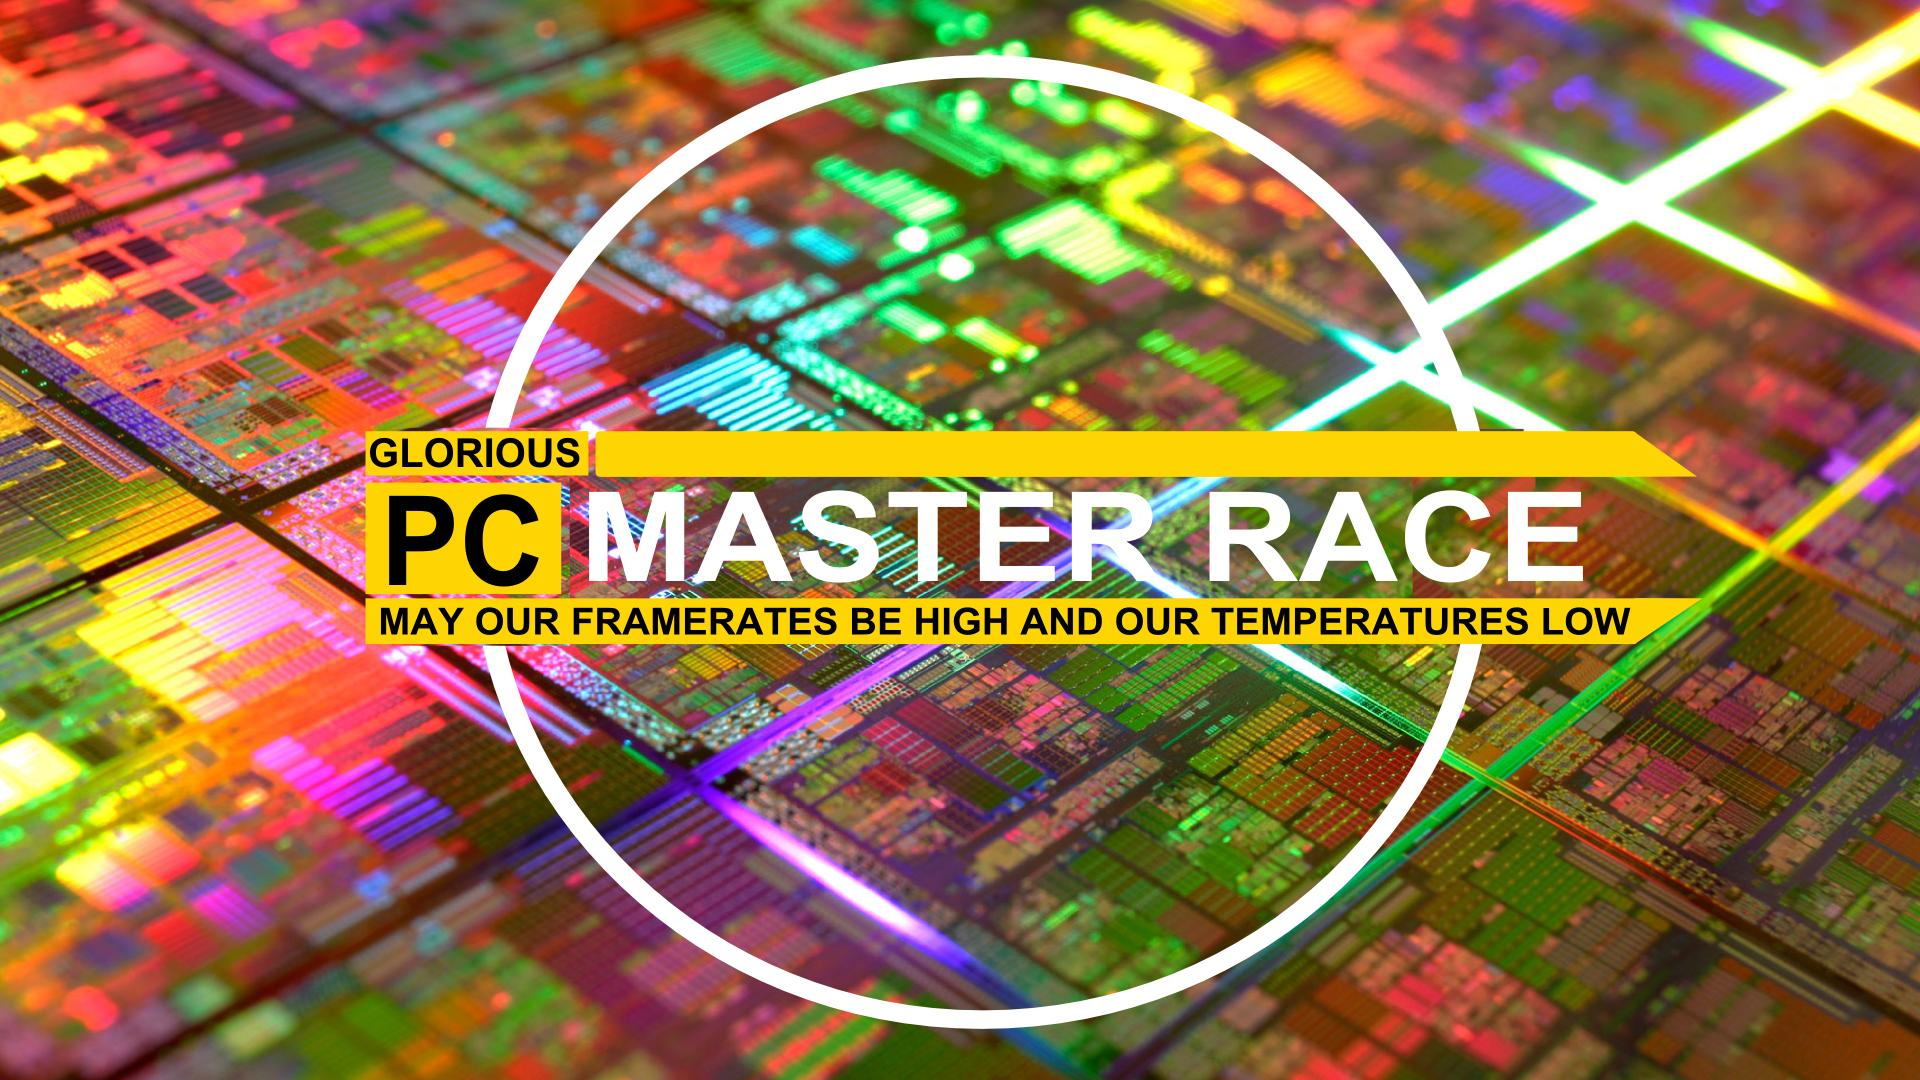 Free Download Pc Master Race Full Hd Sfondo And Sfondo 1920x1080 Id